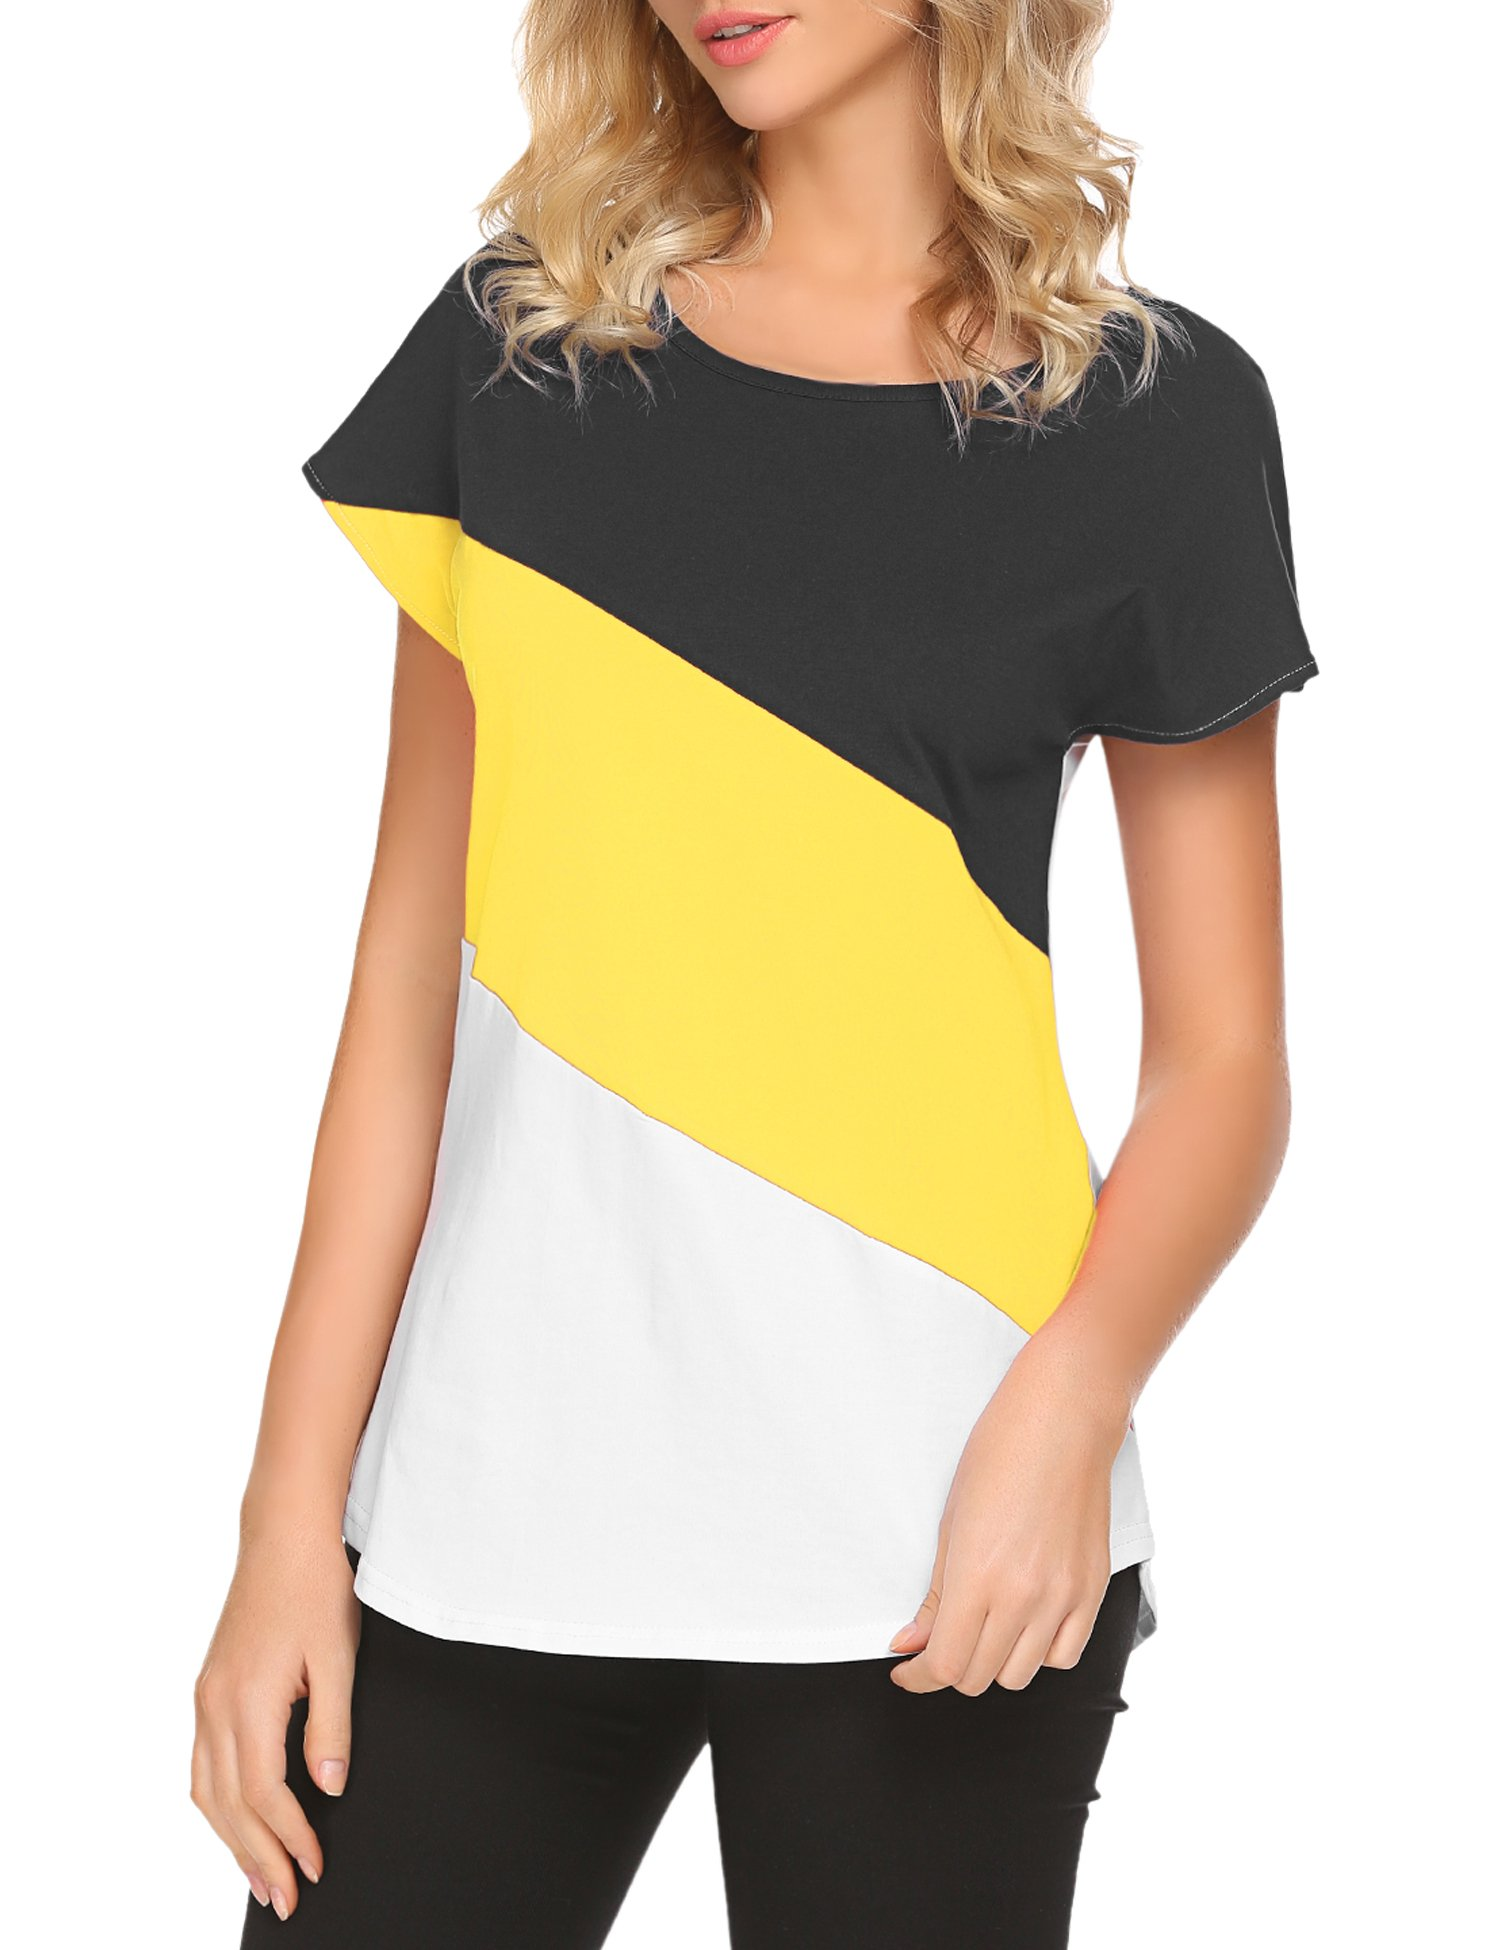 Hount Women's Comfy Pullover Style Short SleeveT Shirt Tops (Black/Yellow/White, X-Large)